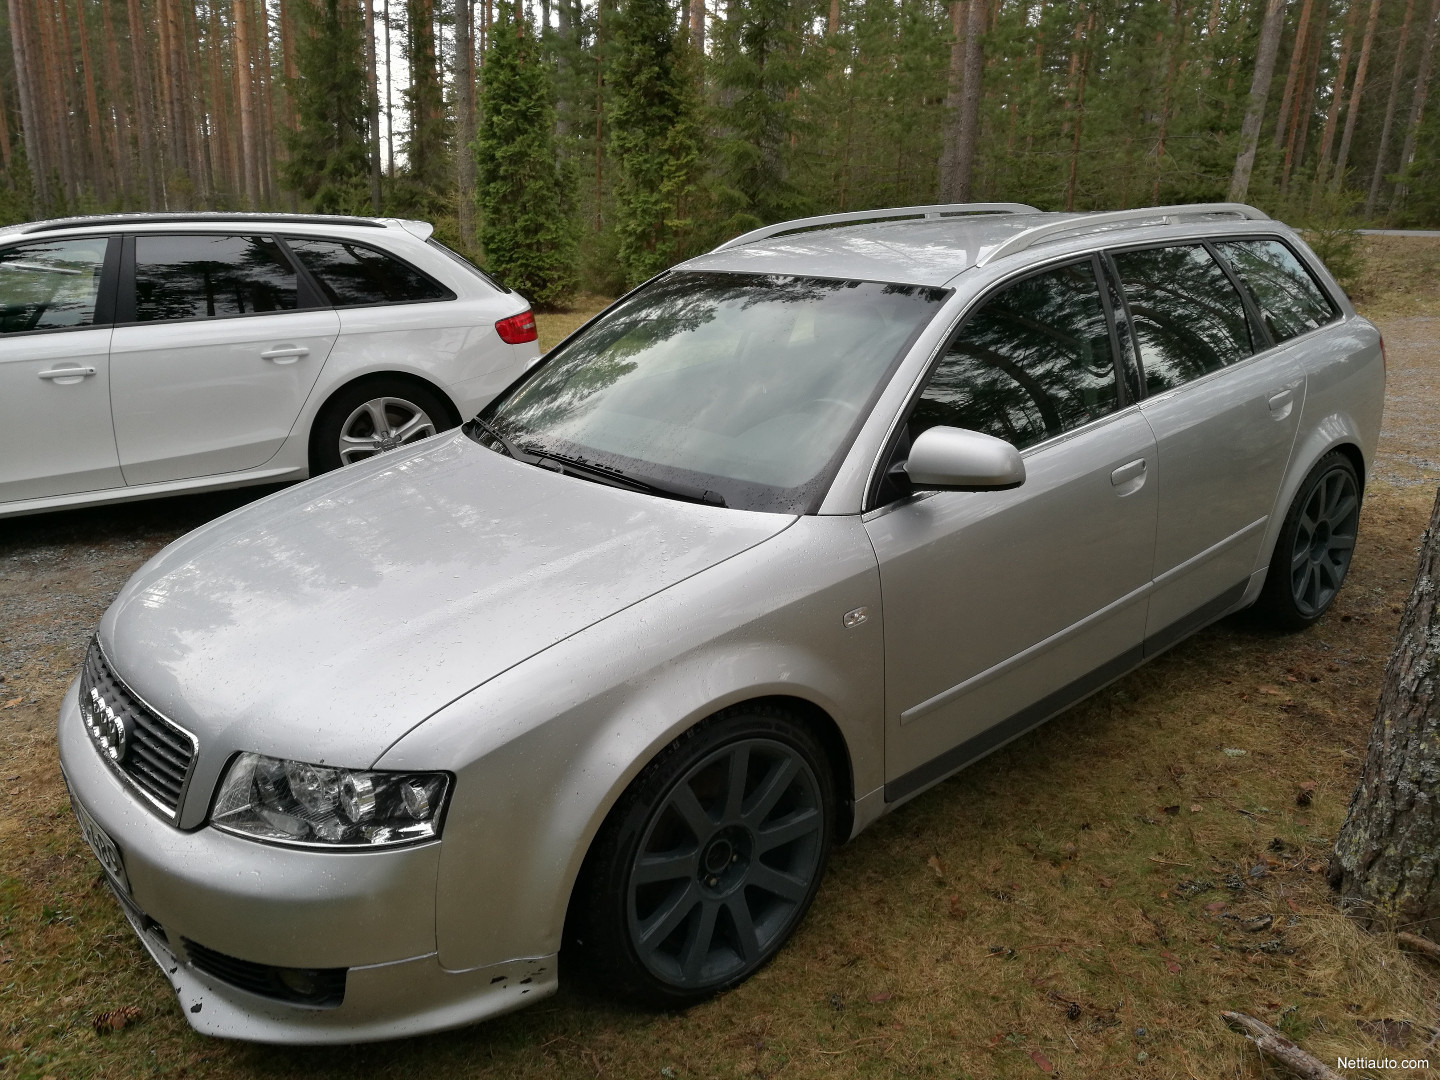 audi a4 2 5 v6 tdi quattro avant 180hp vaihto bobcat kaivuulaitteeseen station wagon 2002. Black Bedroom Furniture Sets. Home Design Ideas